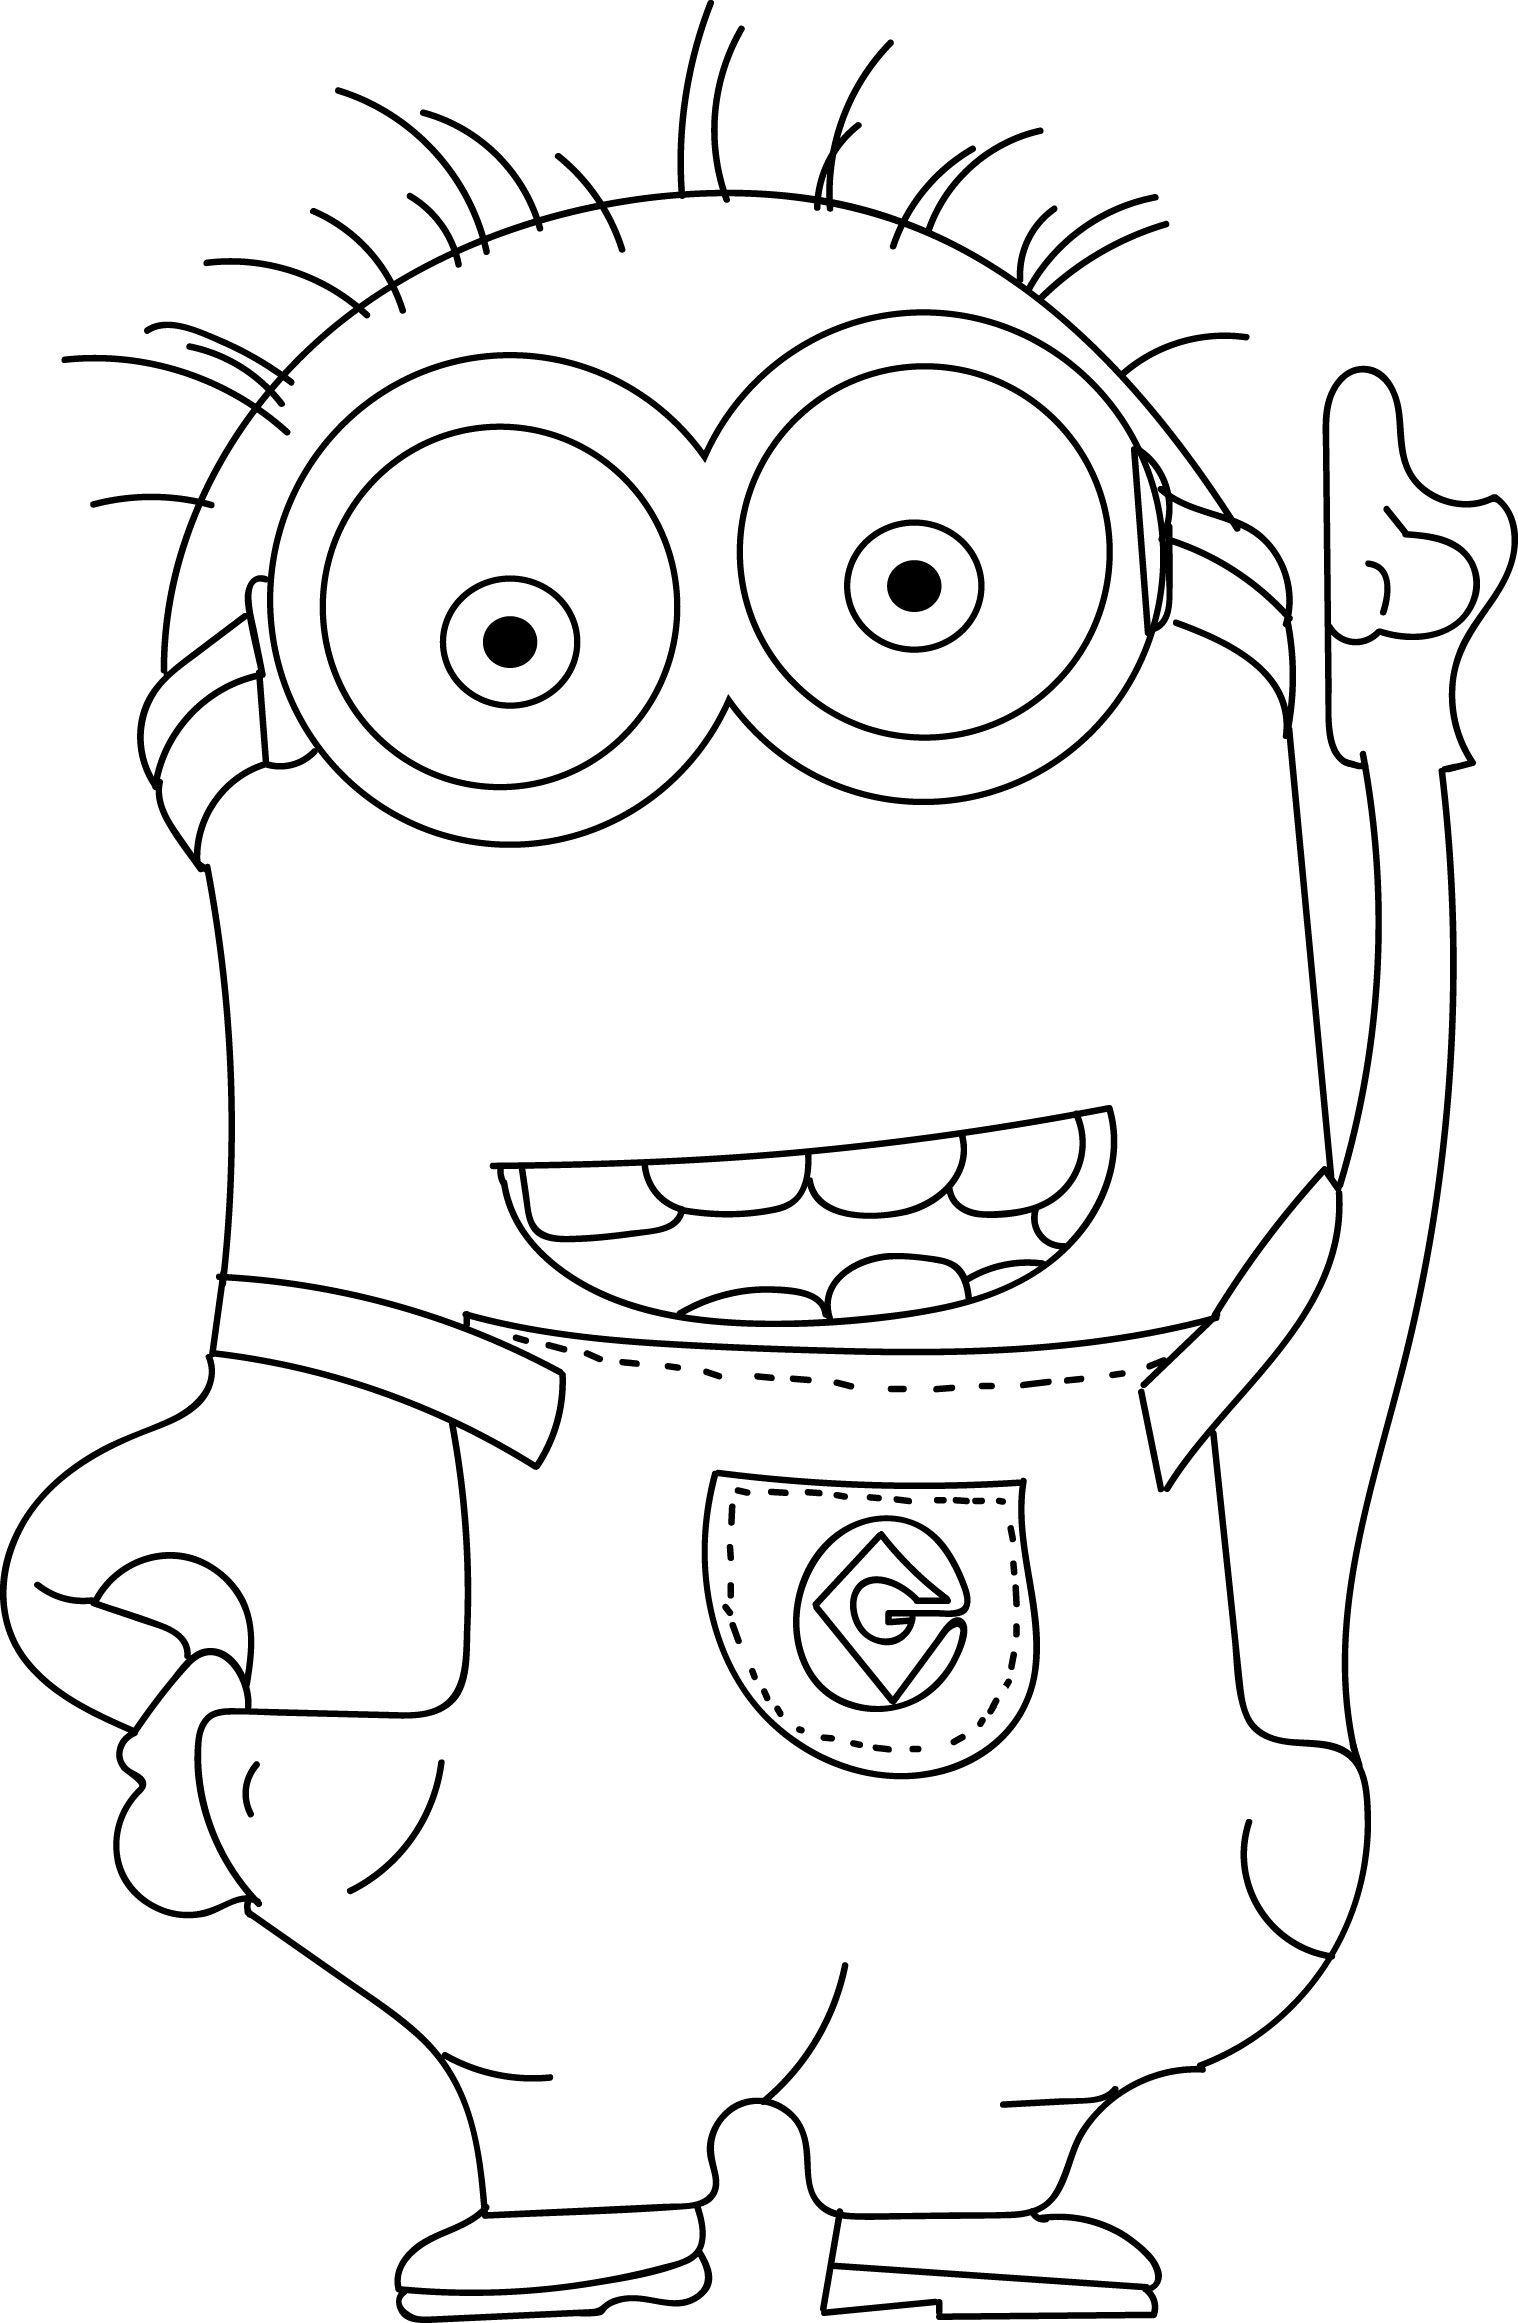 Minions coloring pages peace minion ~ Minions Coloring Pages | Minion coloring pages, Coloring ...